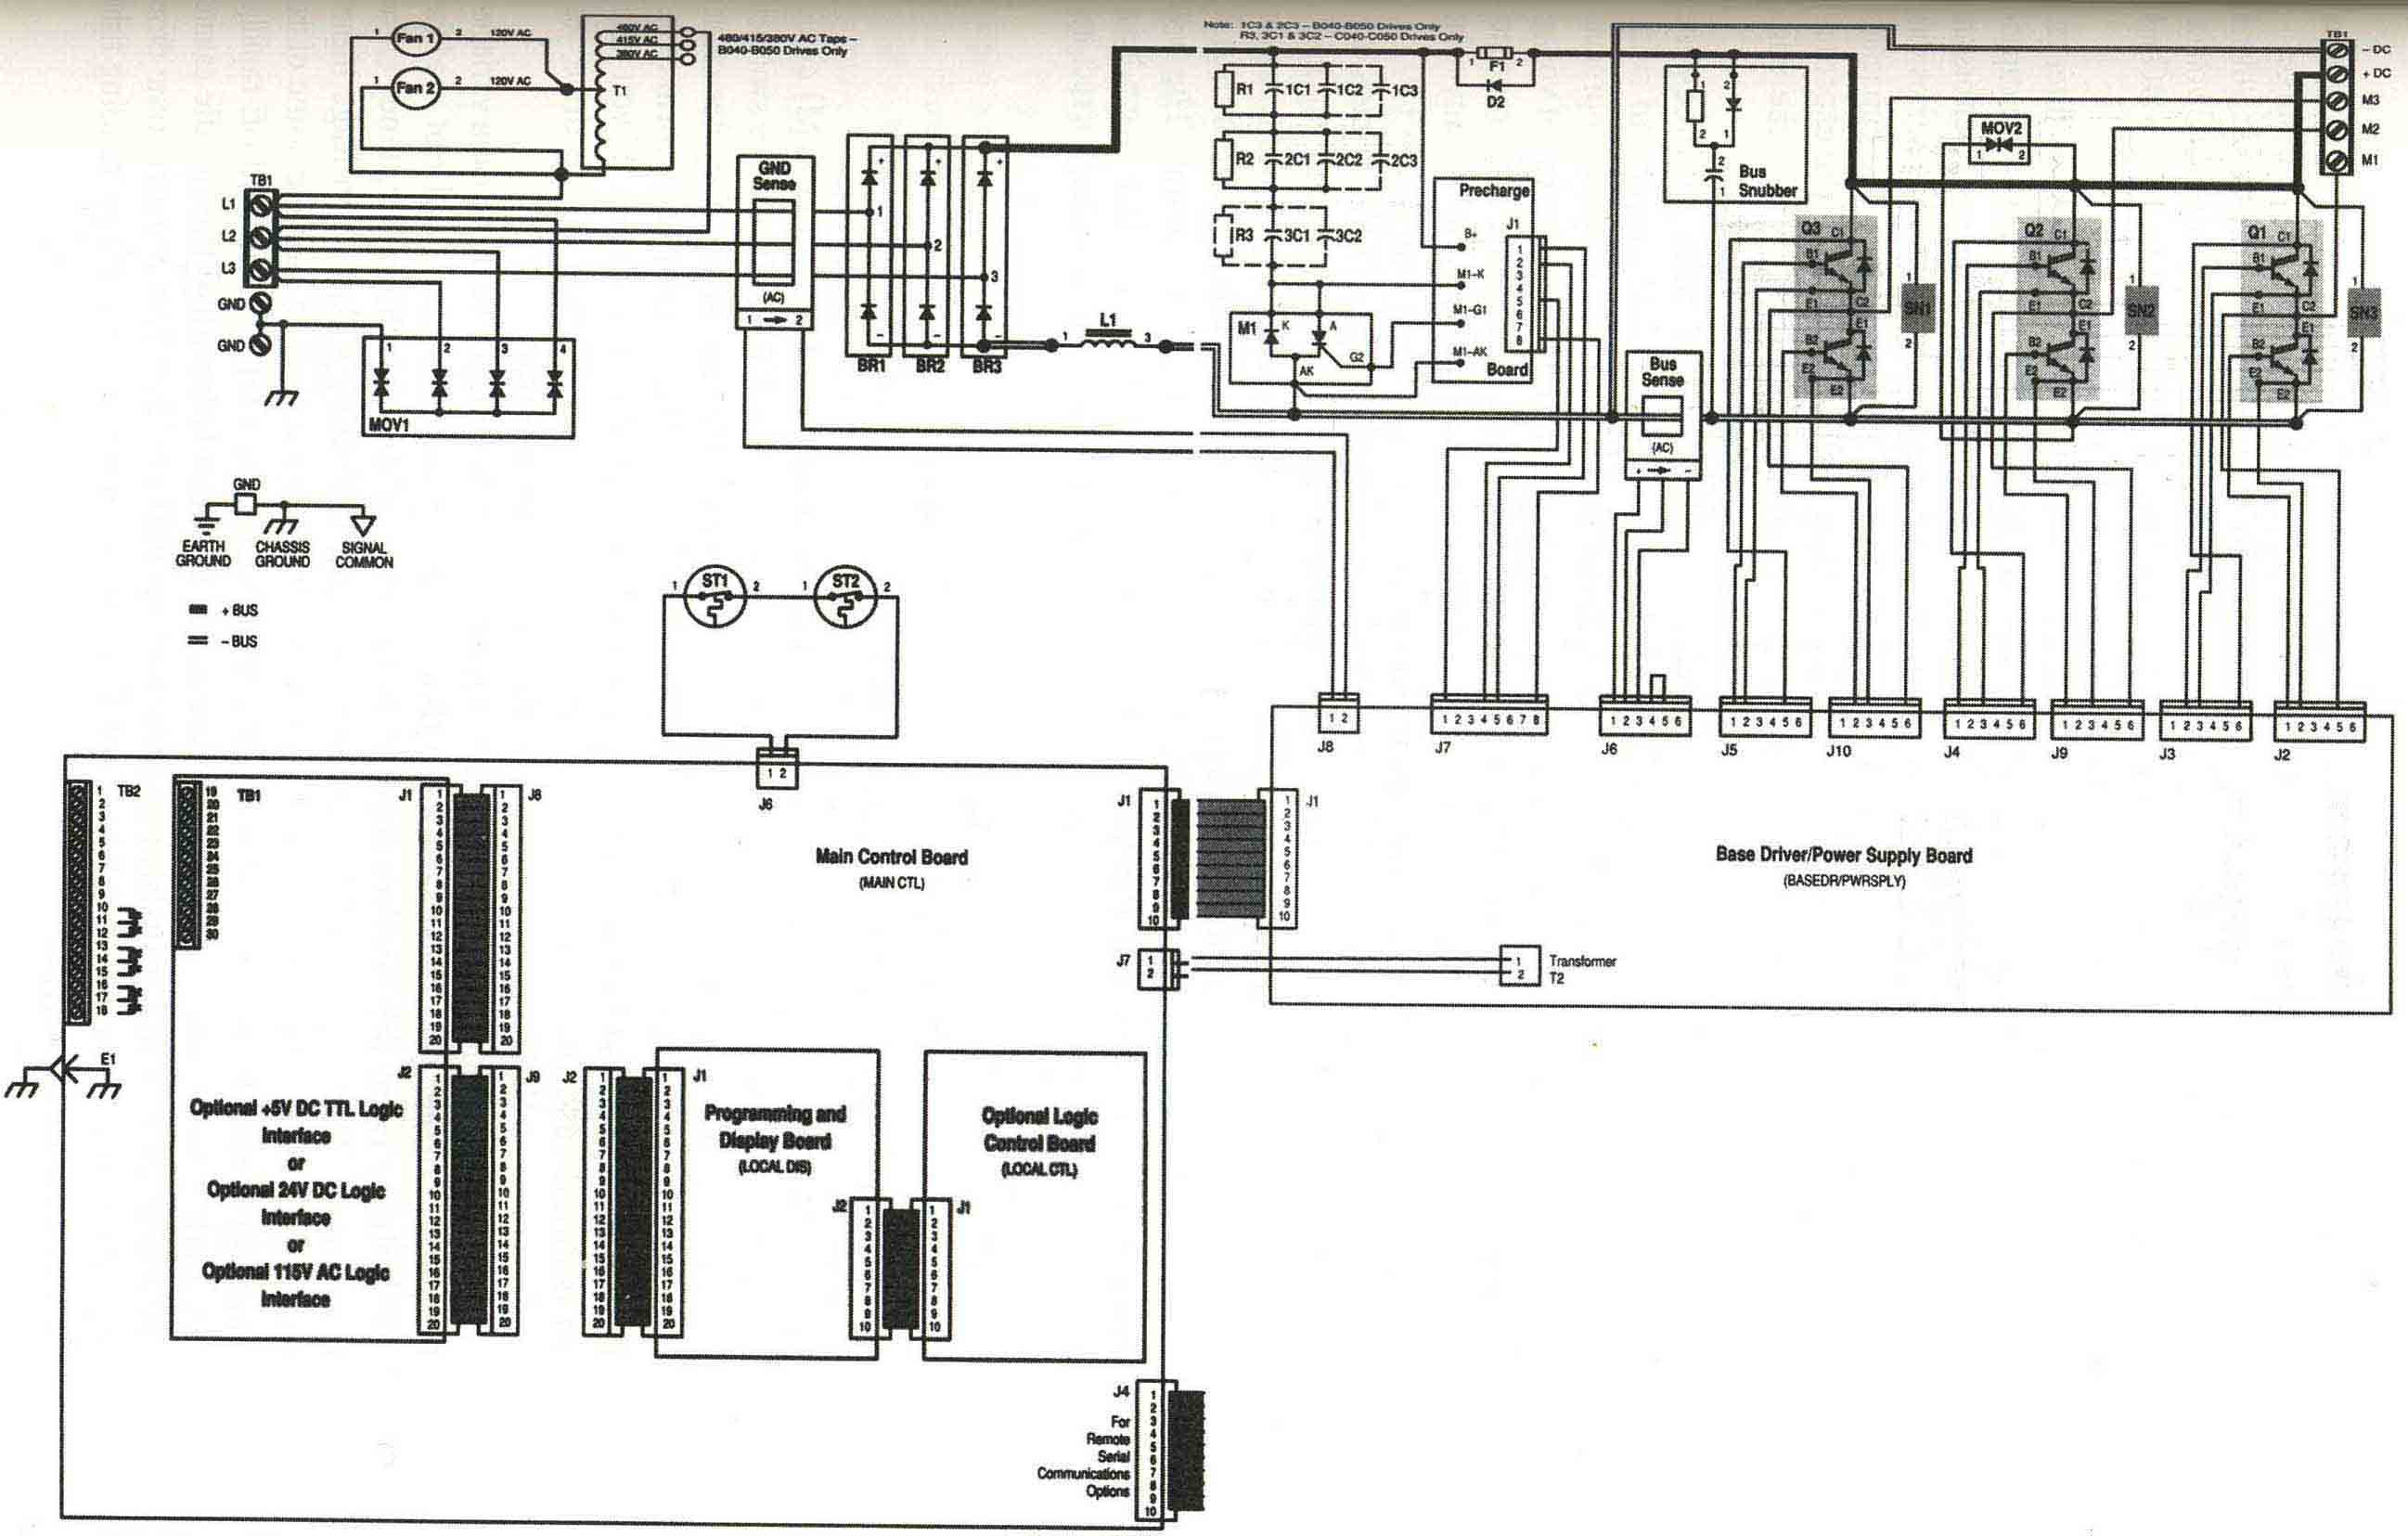 Vfd Pump Wiring Schematic Diagram Will Be A Thing Bypass Solid State Circuits For Variable Frequency Drives Drive Motor